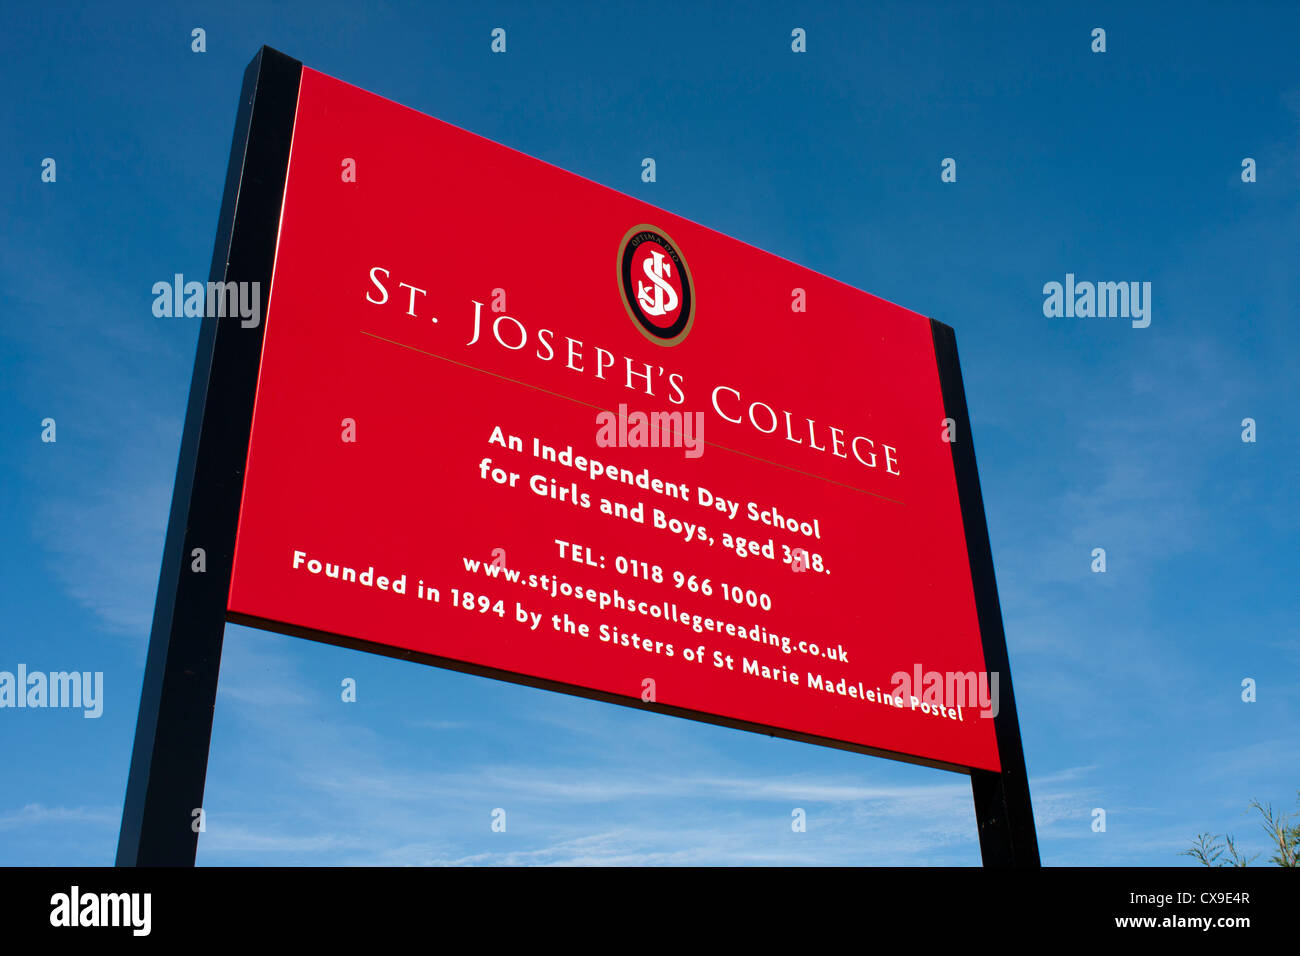 Sign outside St. Joseph's College, a co-educational, independent day school in Reading. - Stock Image